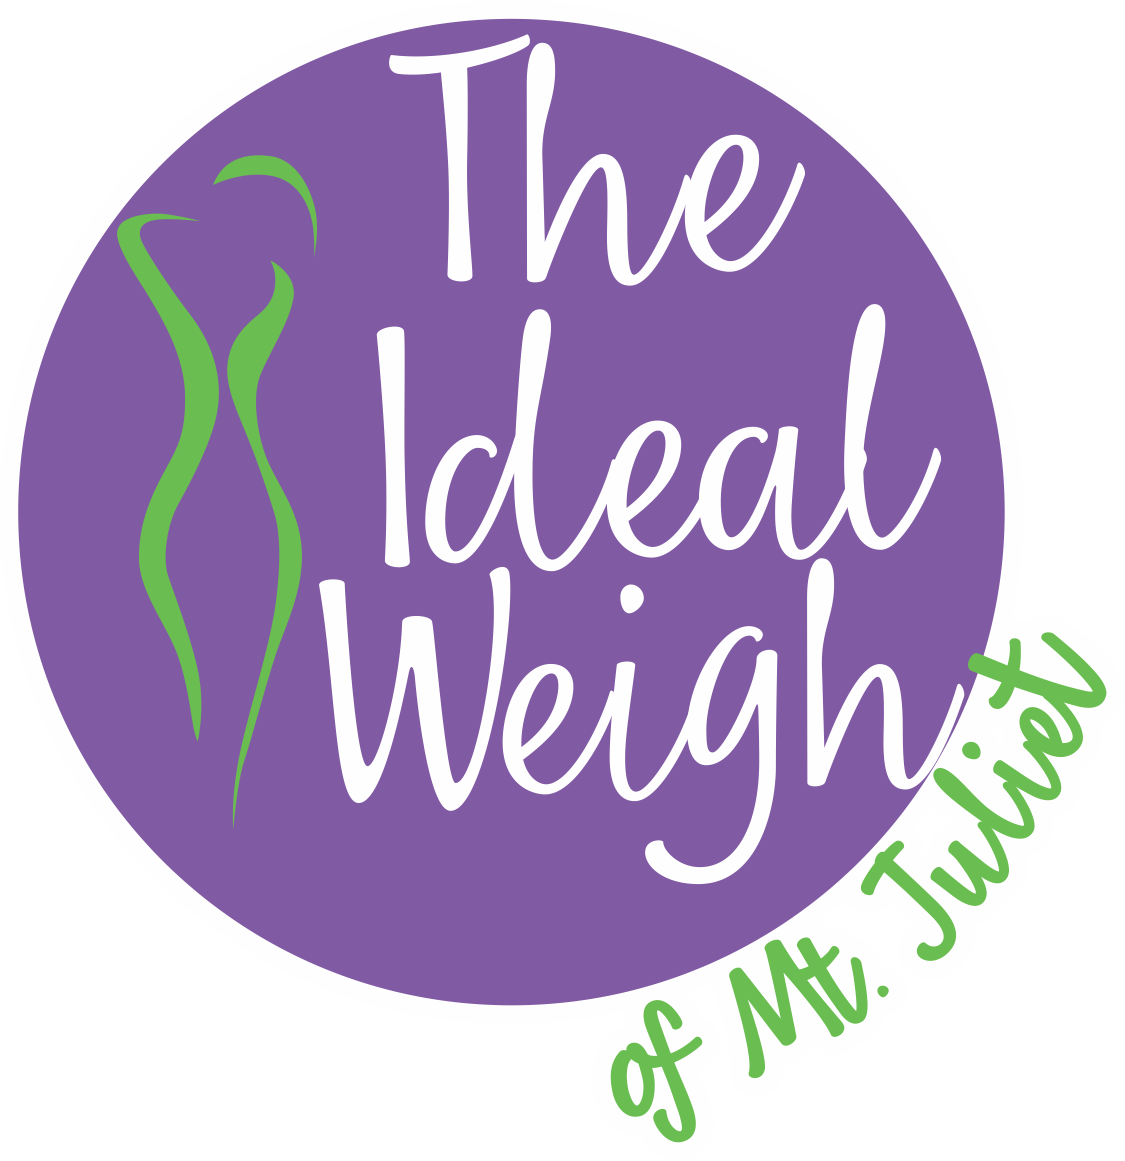 The Ideal Weigh